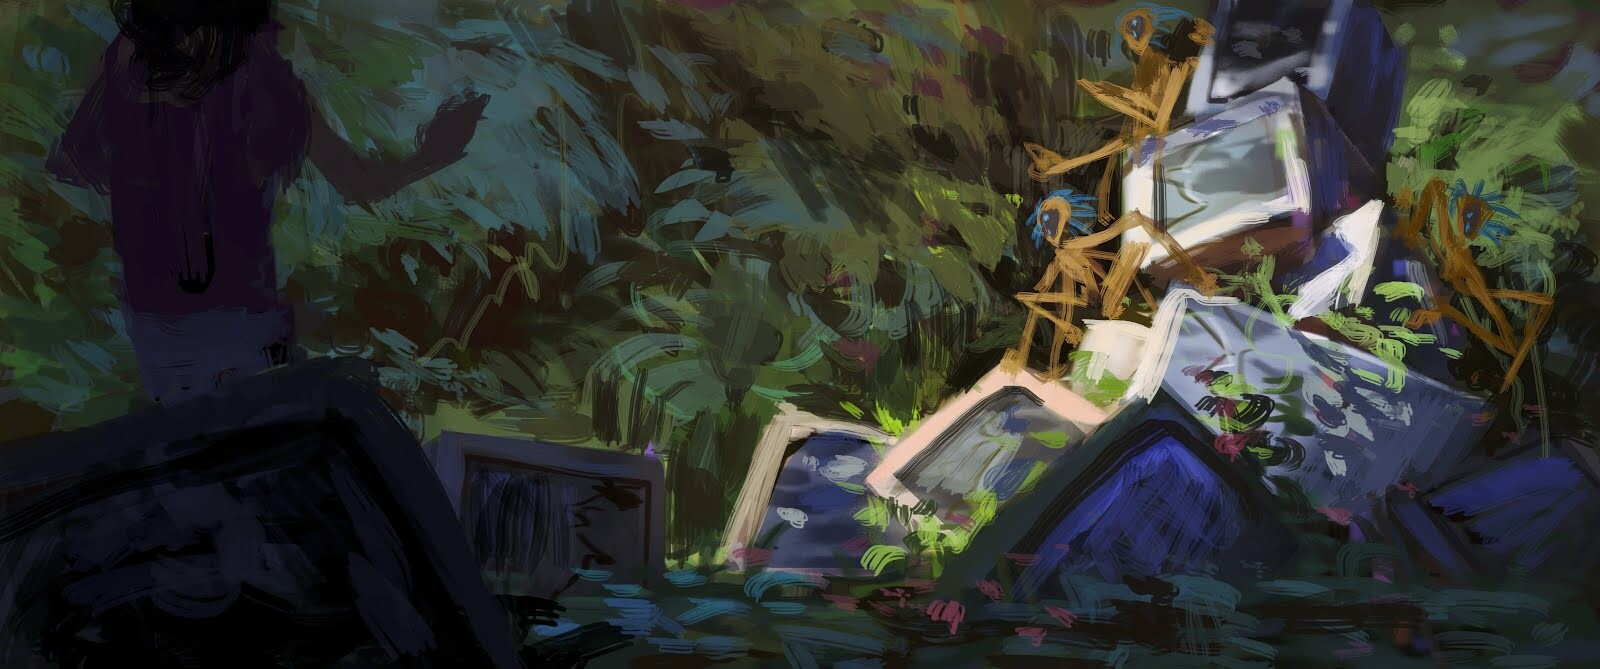 Initial rough sketch, done more to capture the overall mood and tone.